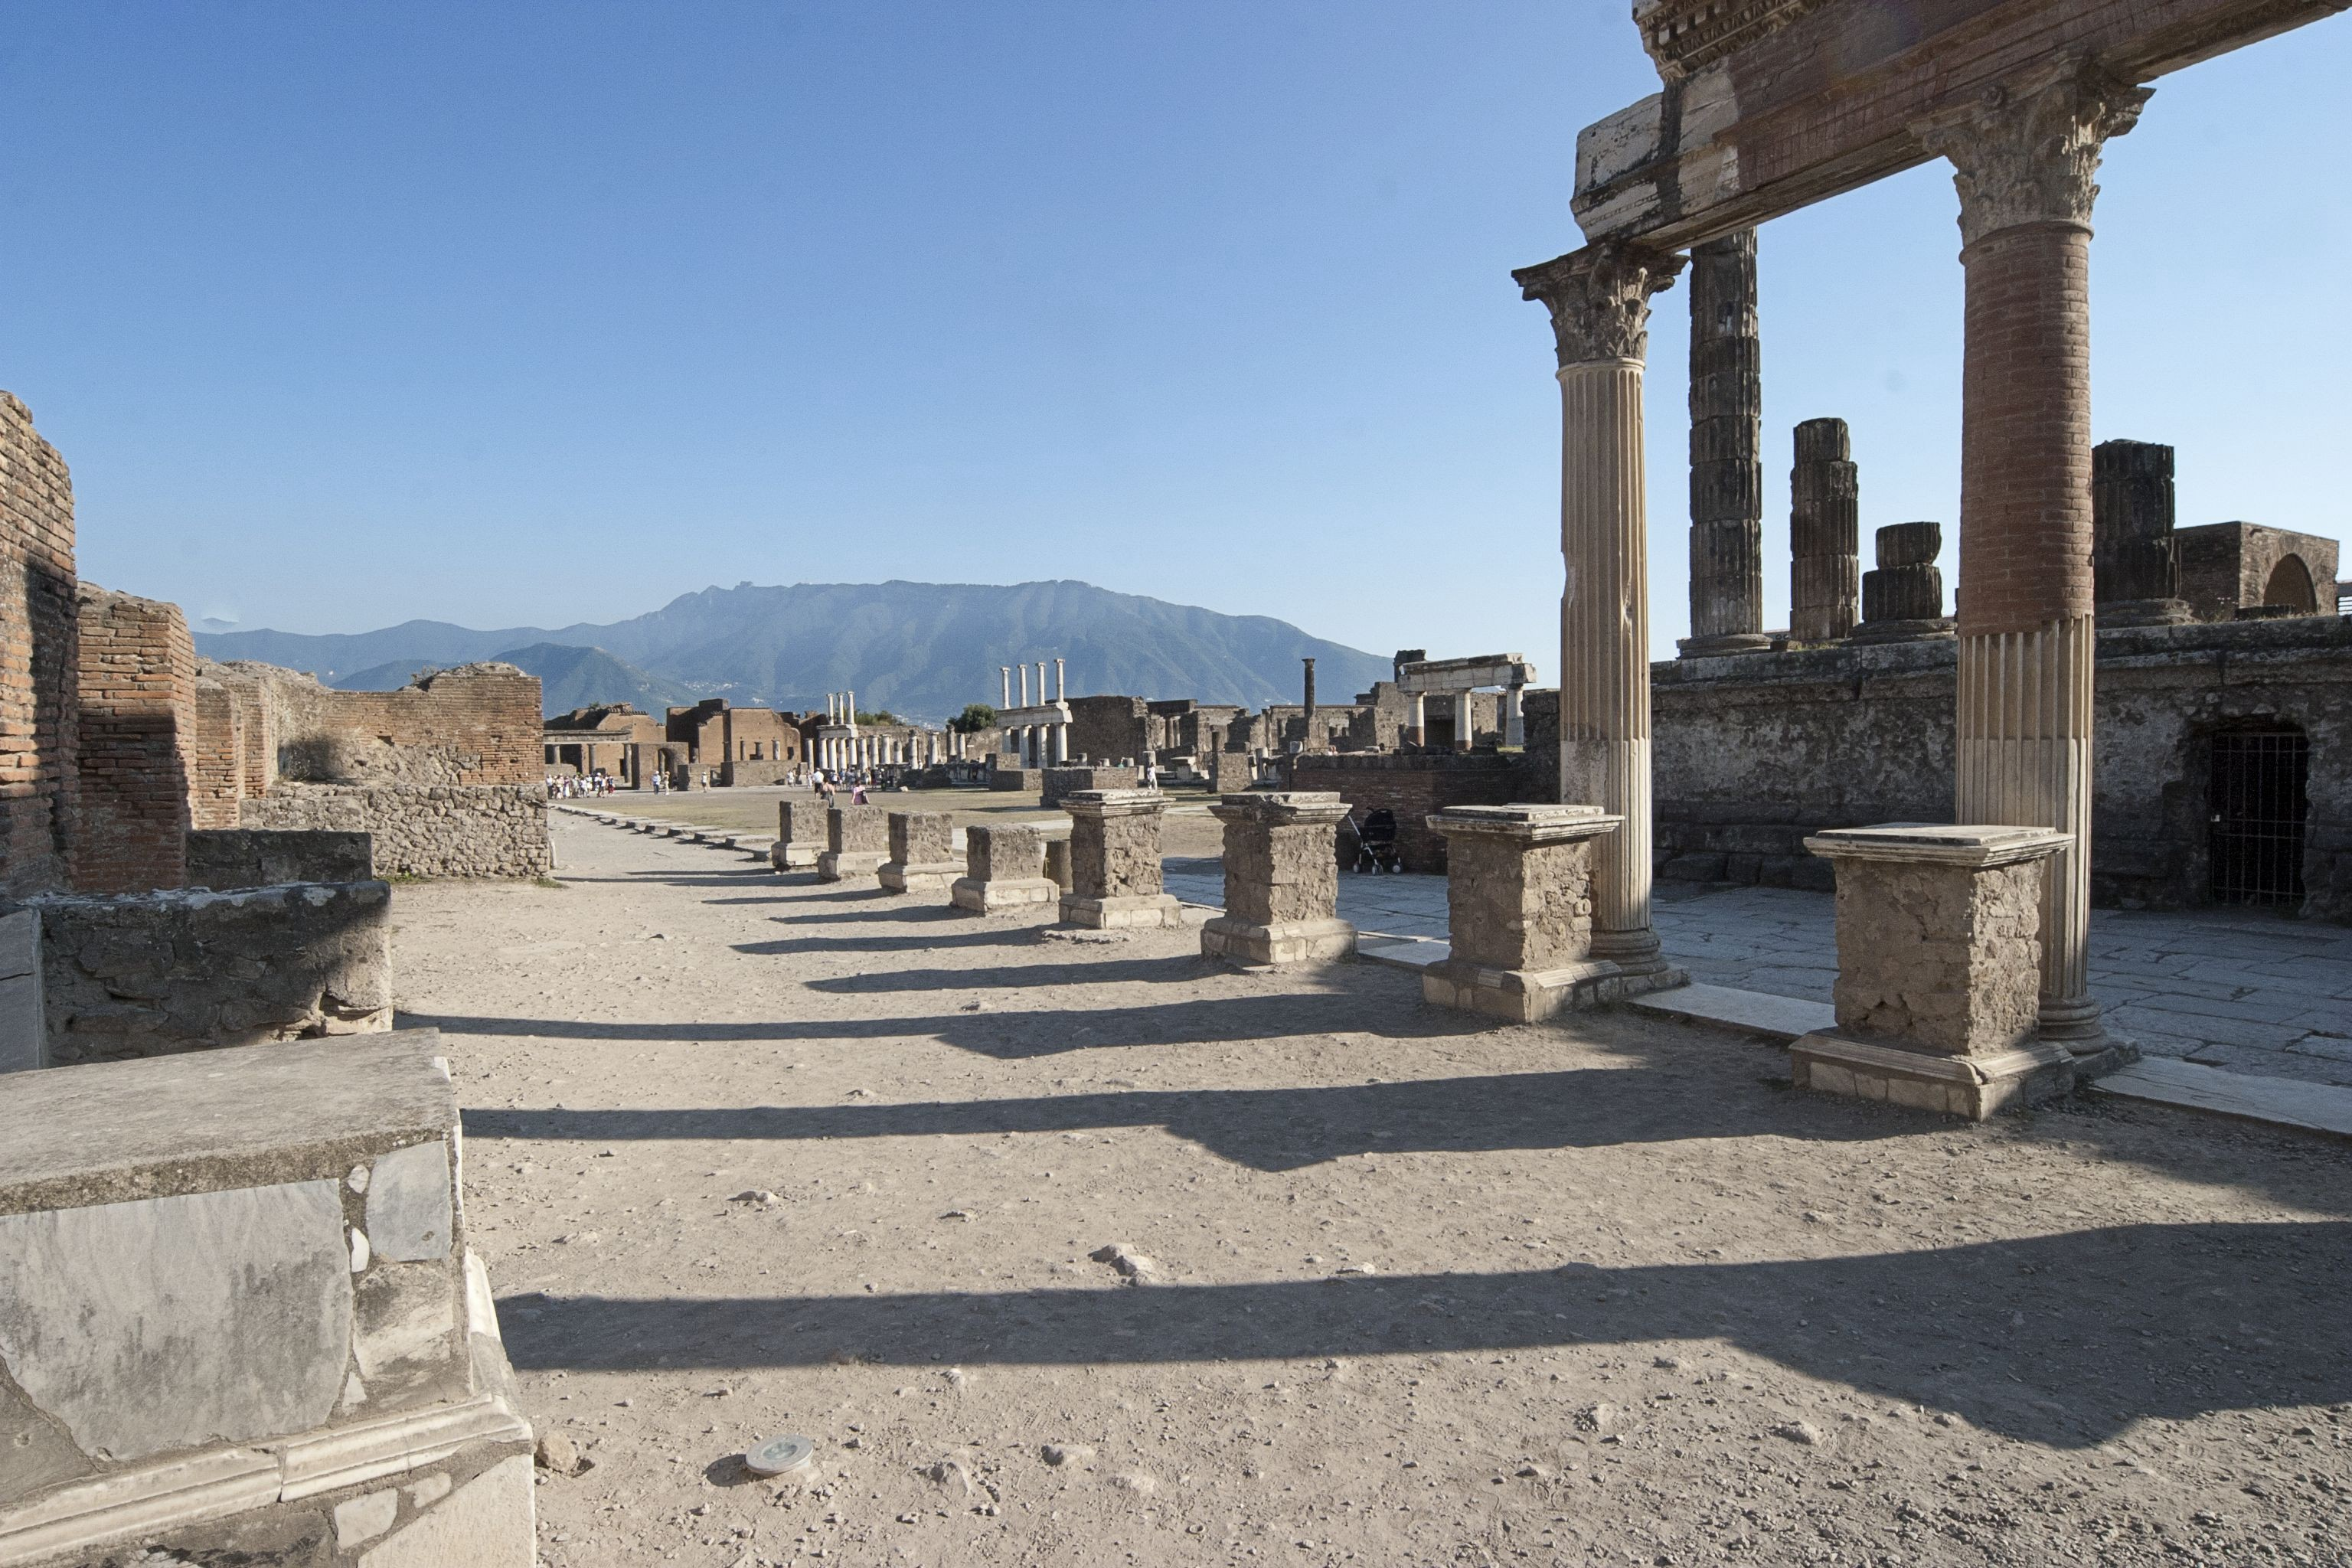 Ruins of Pompeii discovered in 16th Century, after an accidental disovery